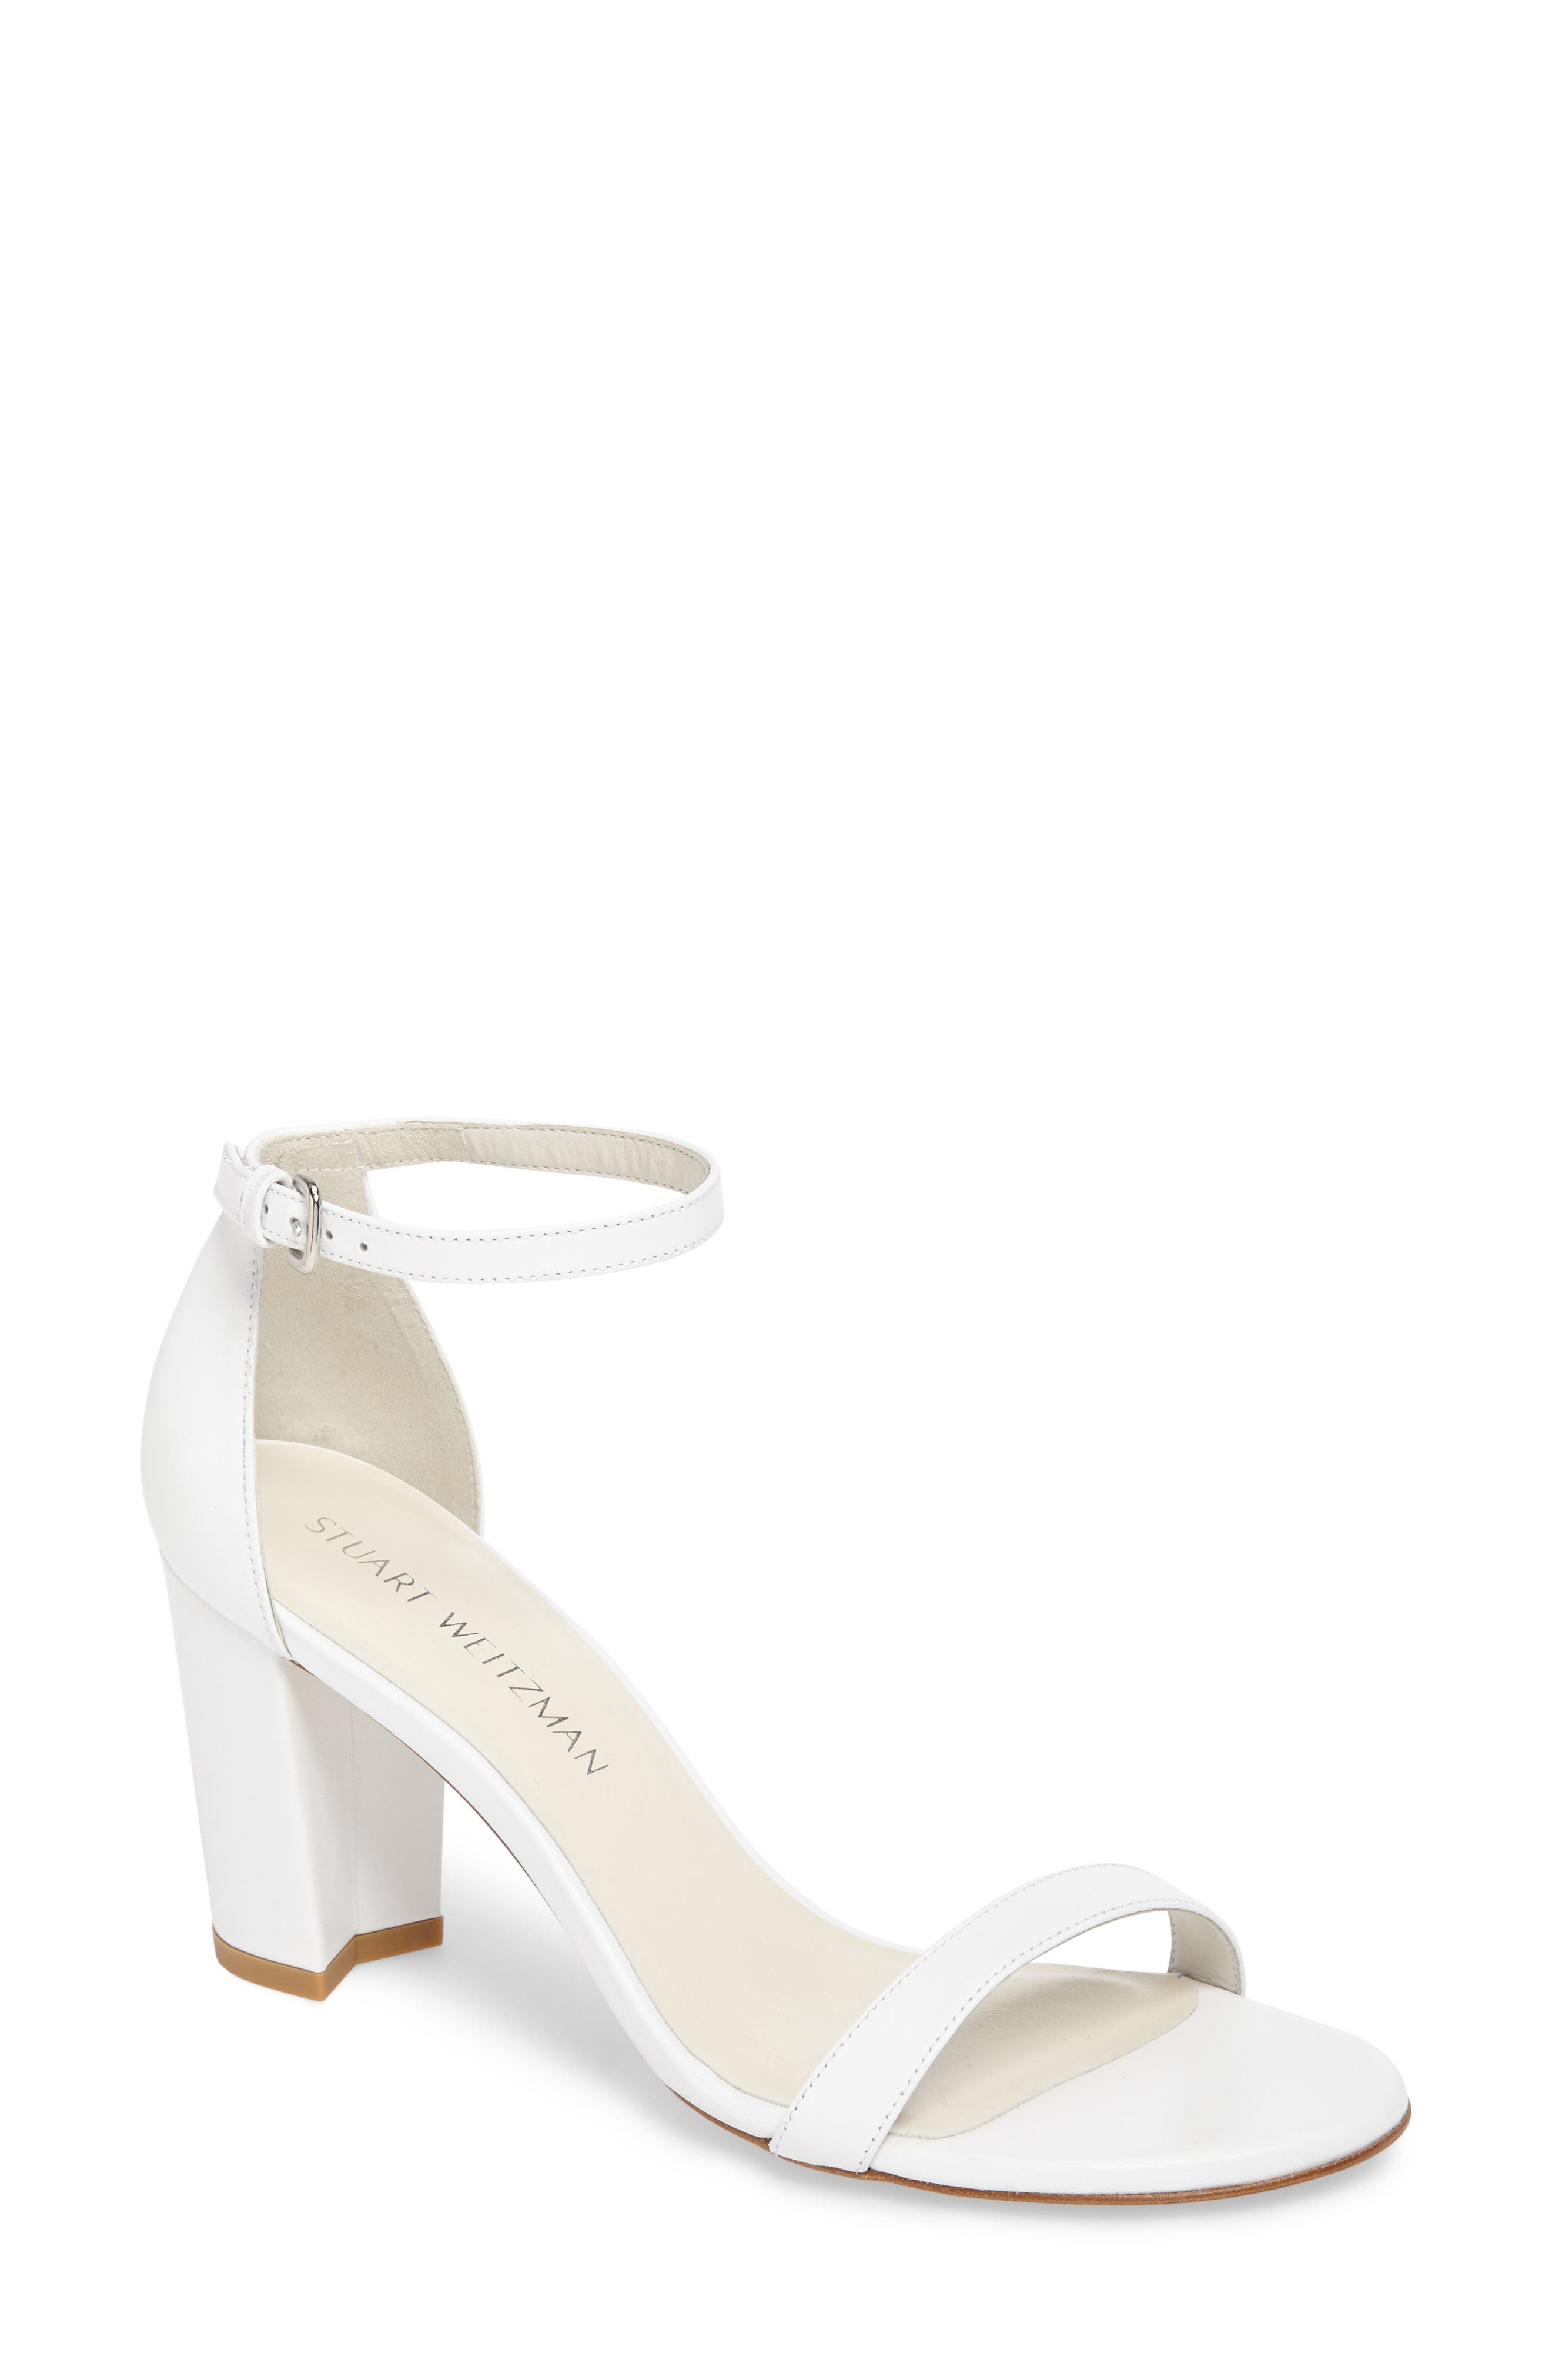 NearlyNude Ankle Strap Sandal,                             Main thumbnail 2, color,